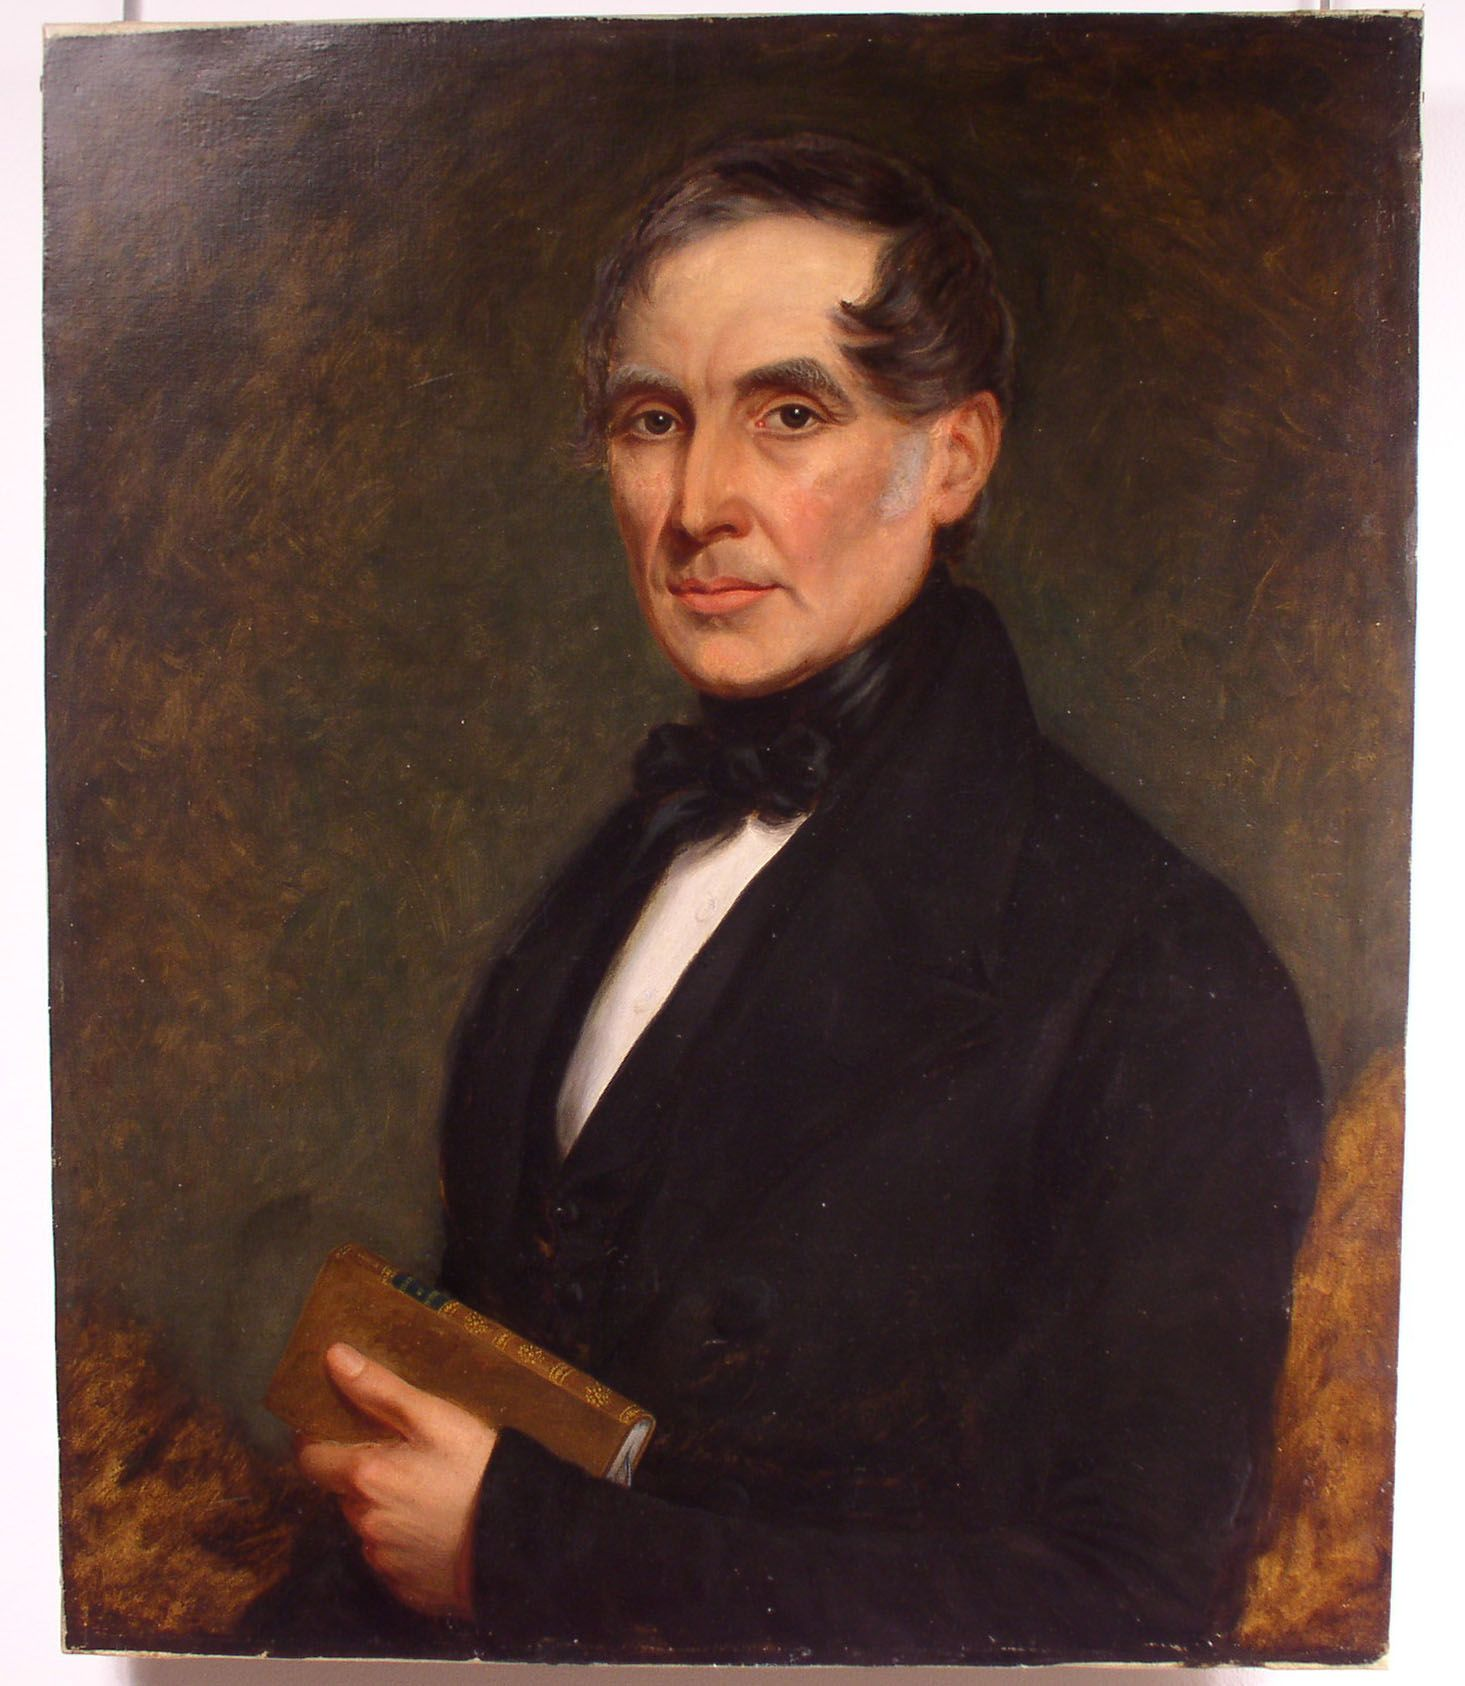 A portrait of Henry Heavisides